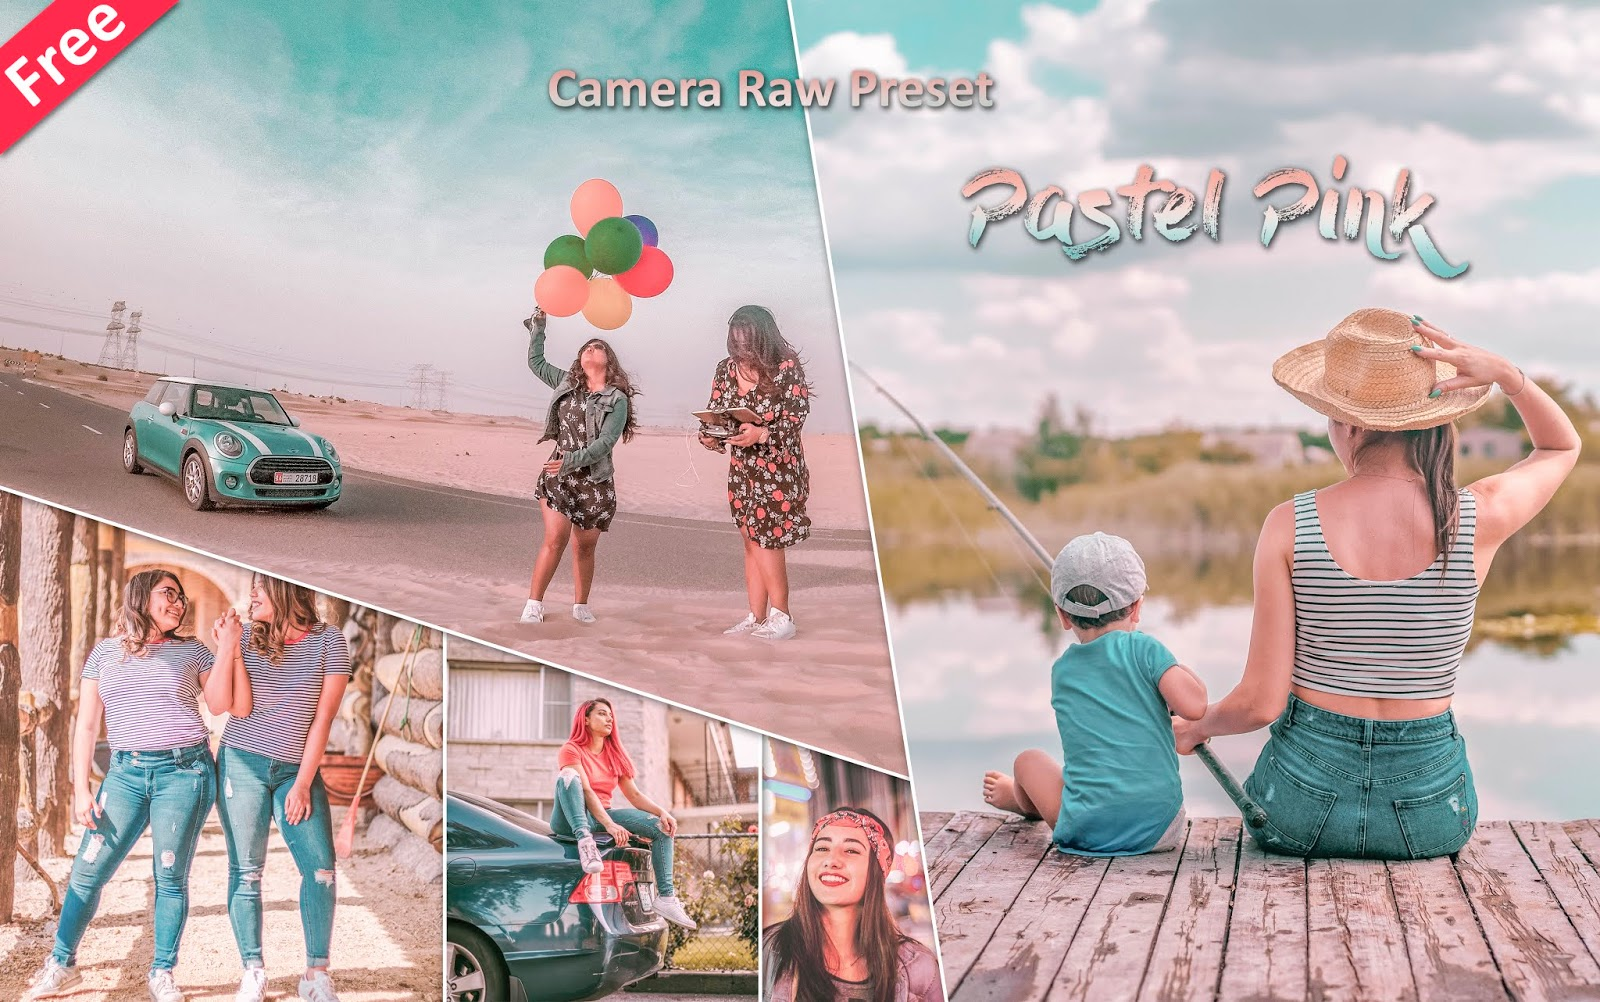 Download Pastel Pink Camera Raw Presets for Free | How to Edit Photos Like Pastel Pink Effect in Photoshop